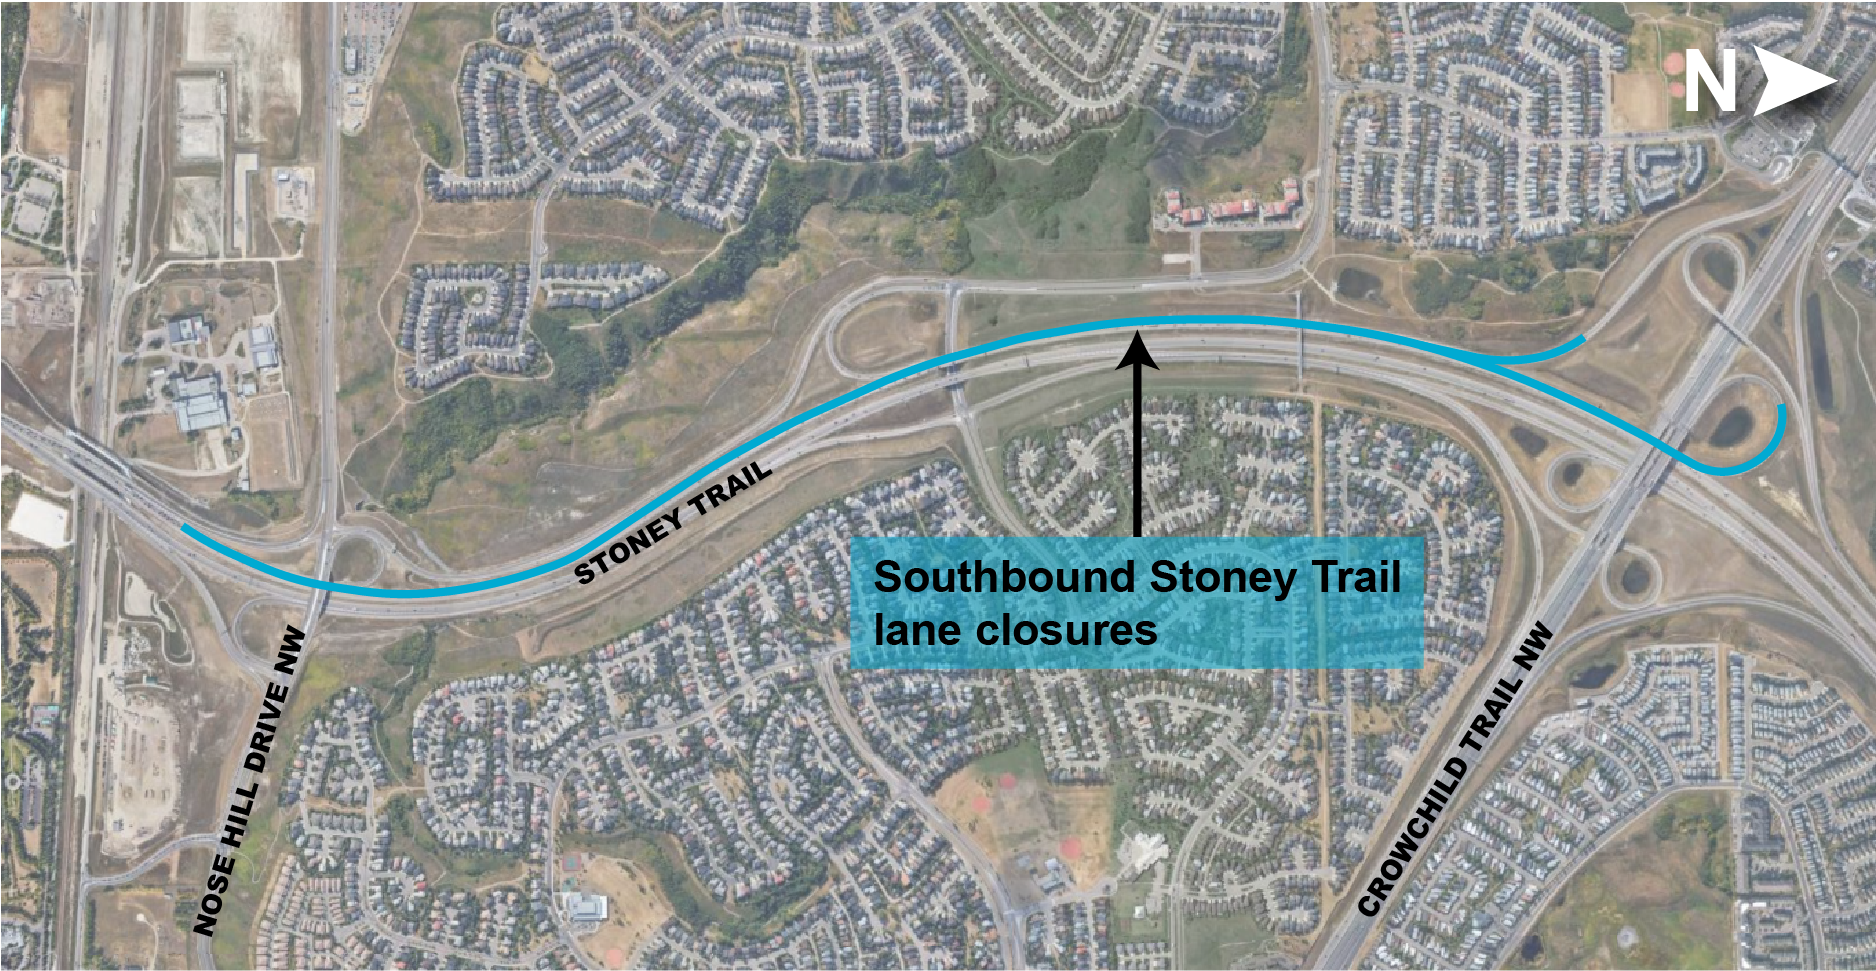 Southbound Stoney Trail lane closure map